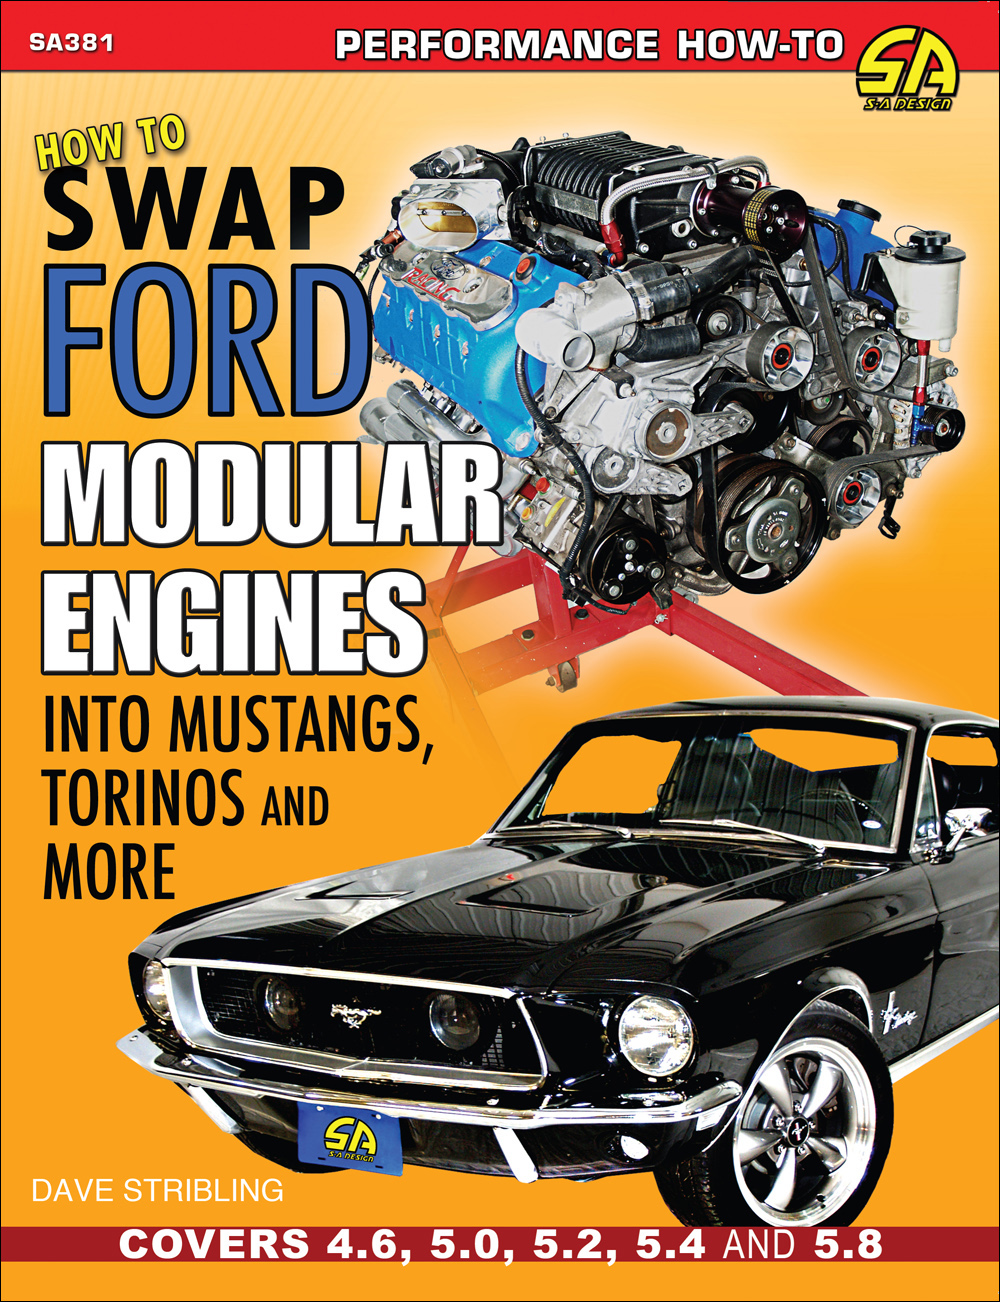 How To Swap Ford Modular Engines Into Mustangs, Torinos, Etc.